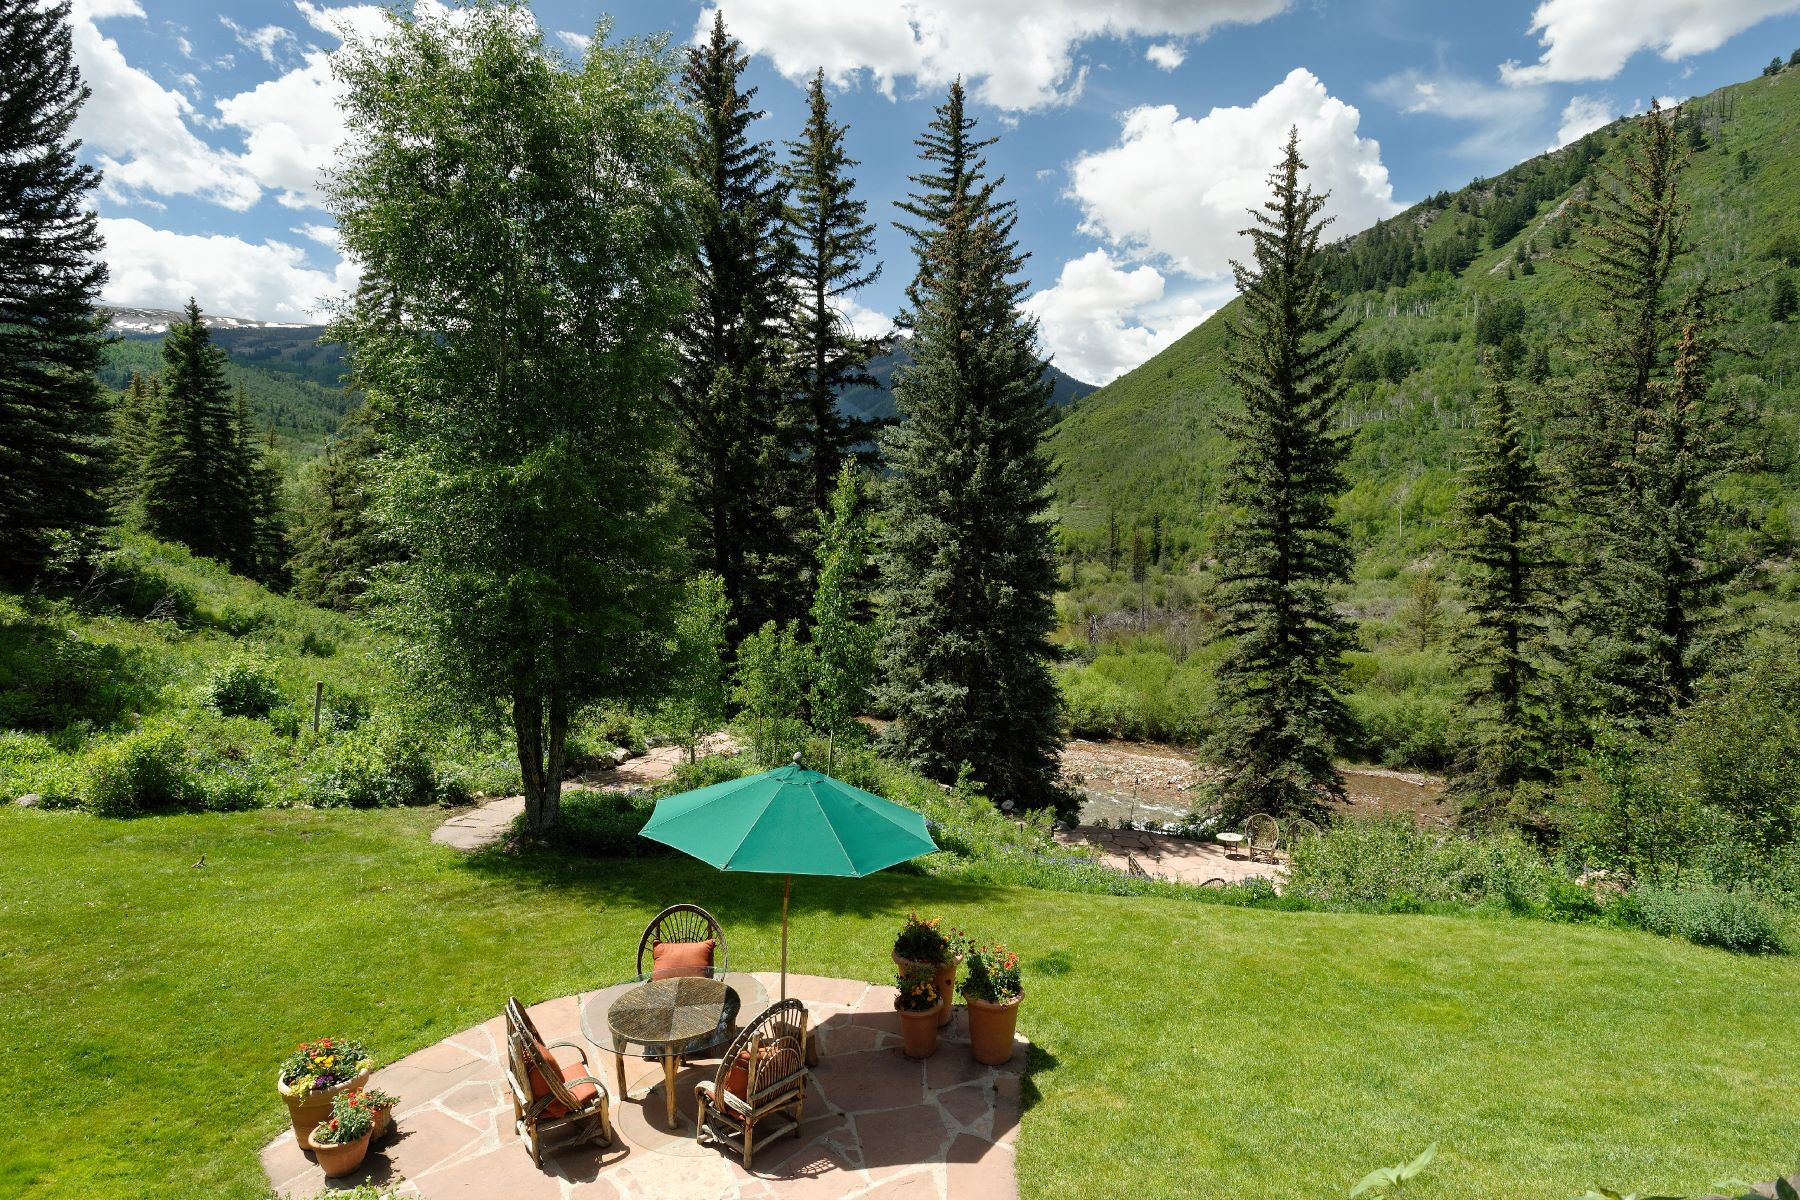 Single Family Home for Active at River Hideaway with Mountain Views 9000 Snowmass Creek Rd Snowmass, Colorado 81654 United States